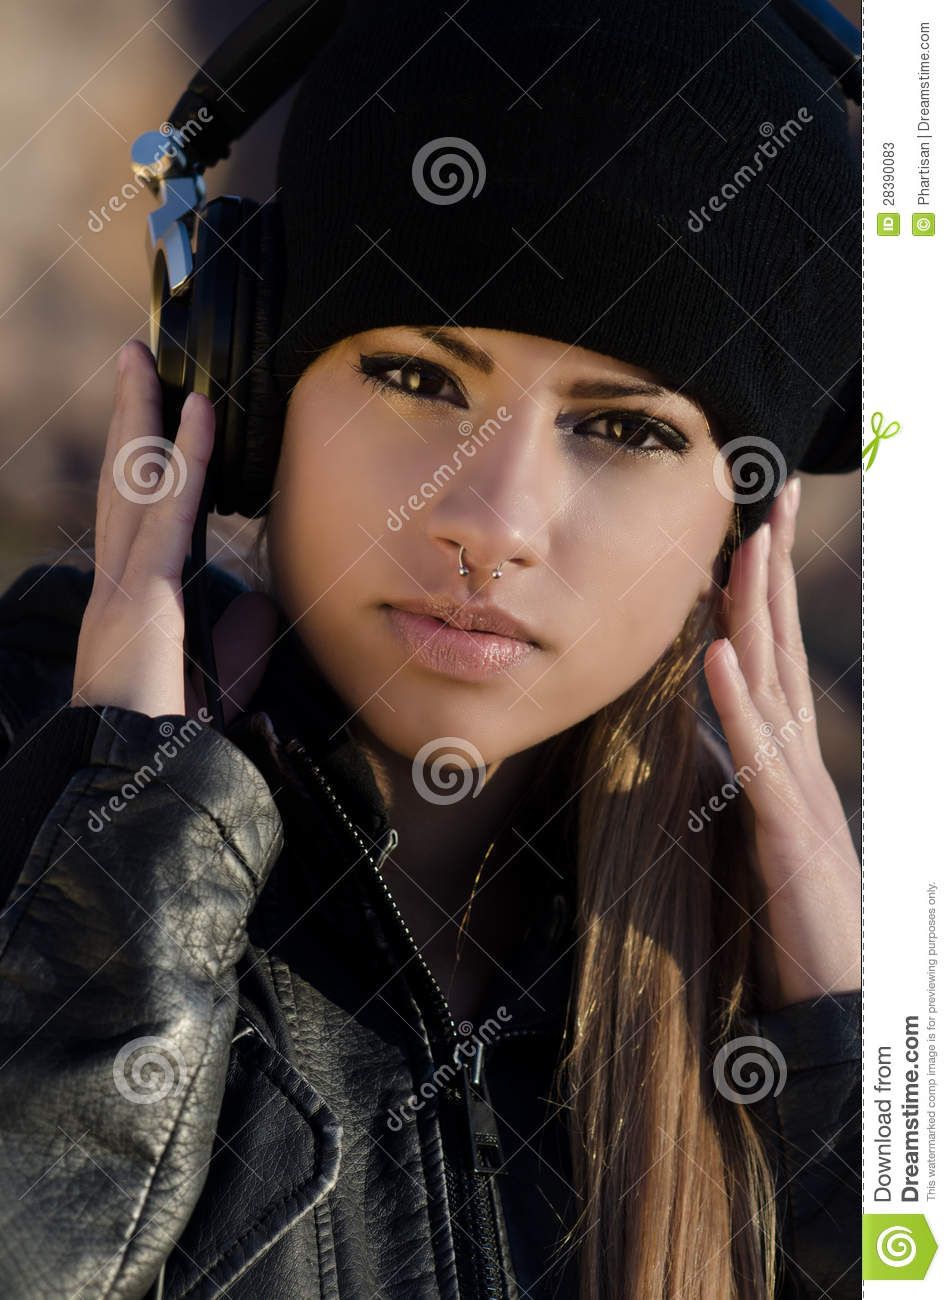 Woman Wearing Beanie Hat With Headphones Stock Photos ...